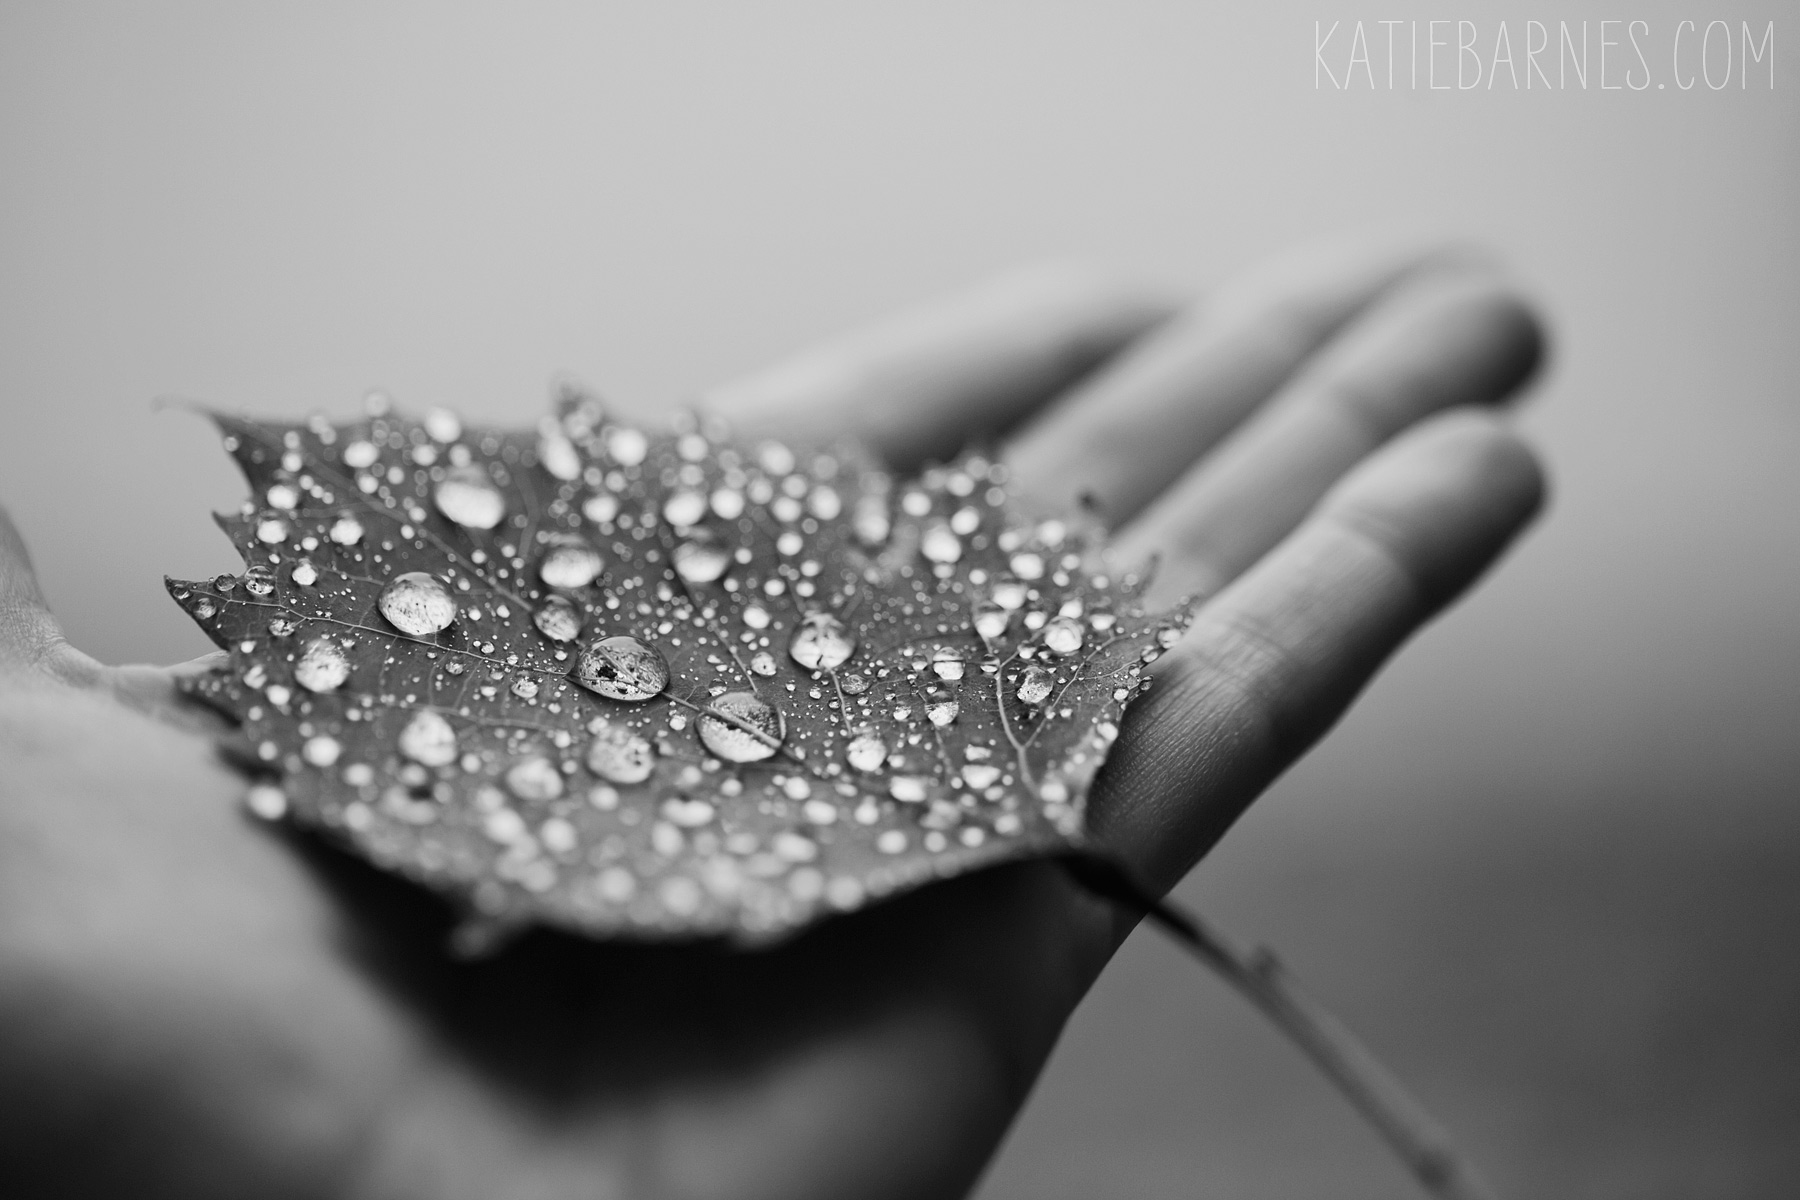 20140909-leaf-droplets